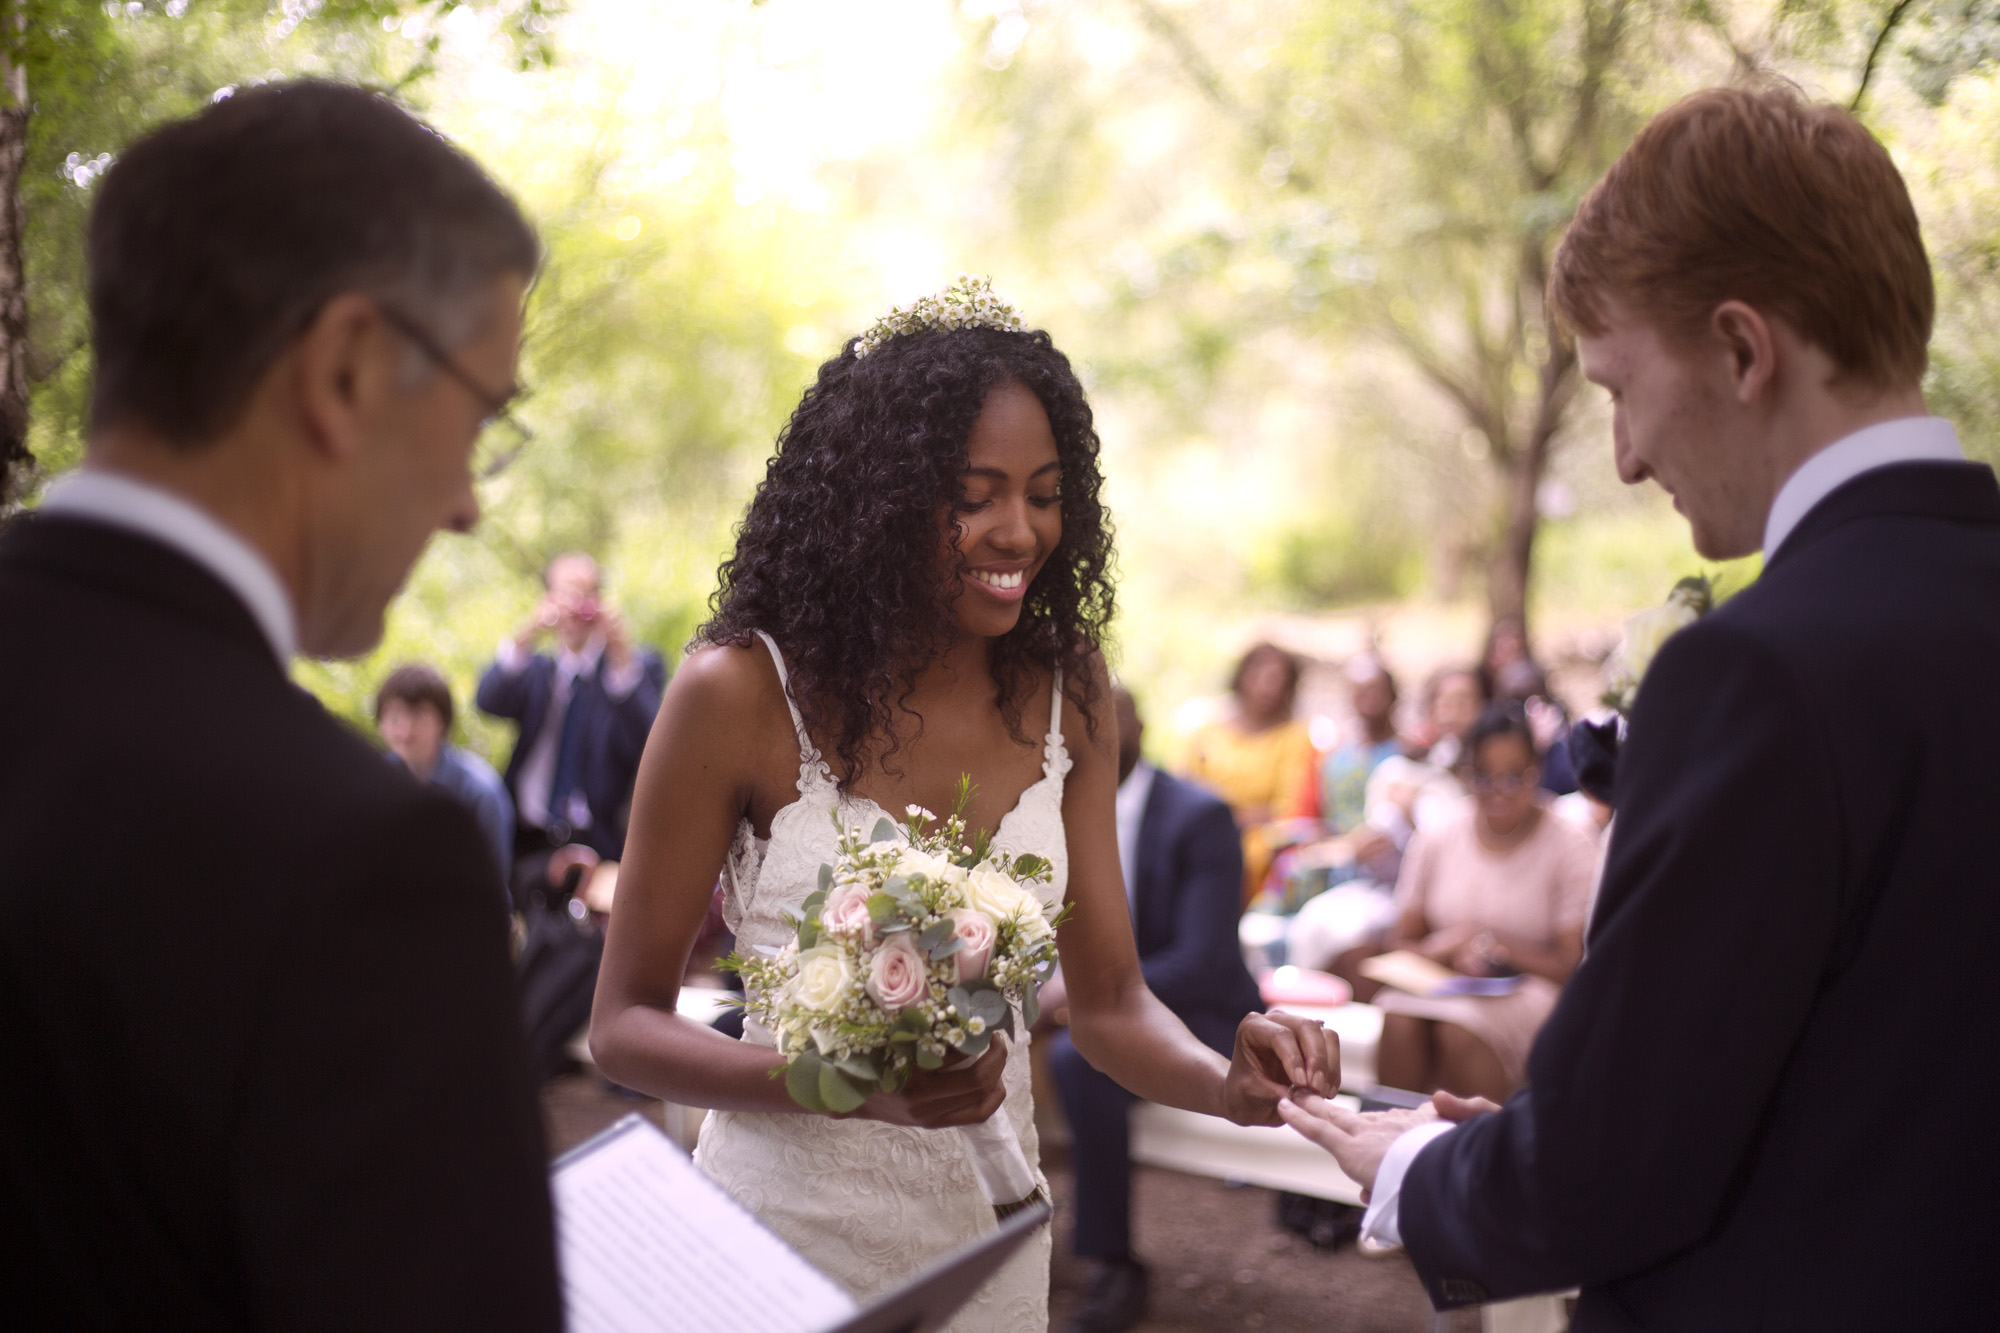 Bride and groom exchanging rings during ceremony outdoor wedding photographer